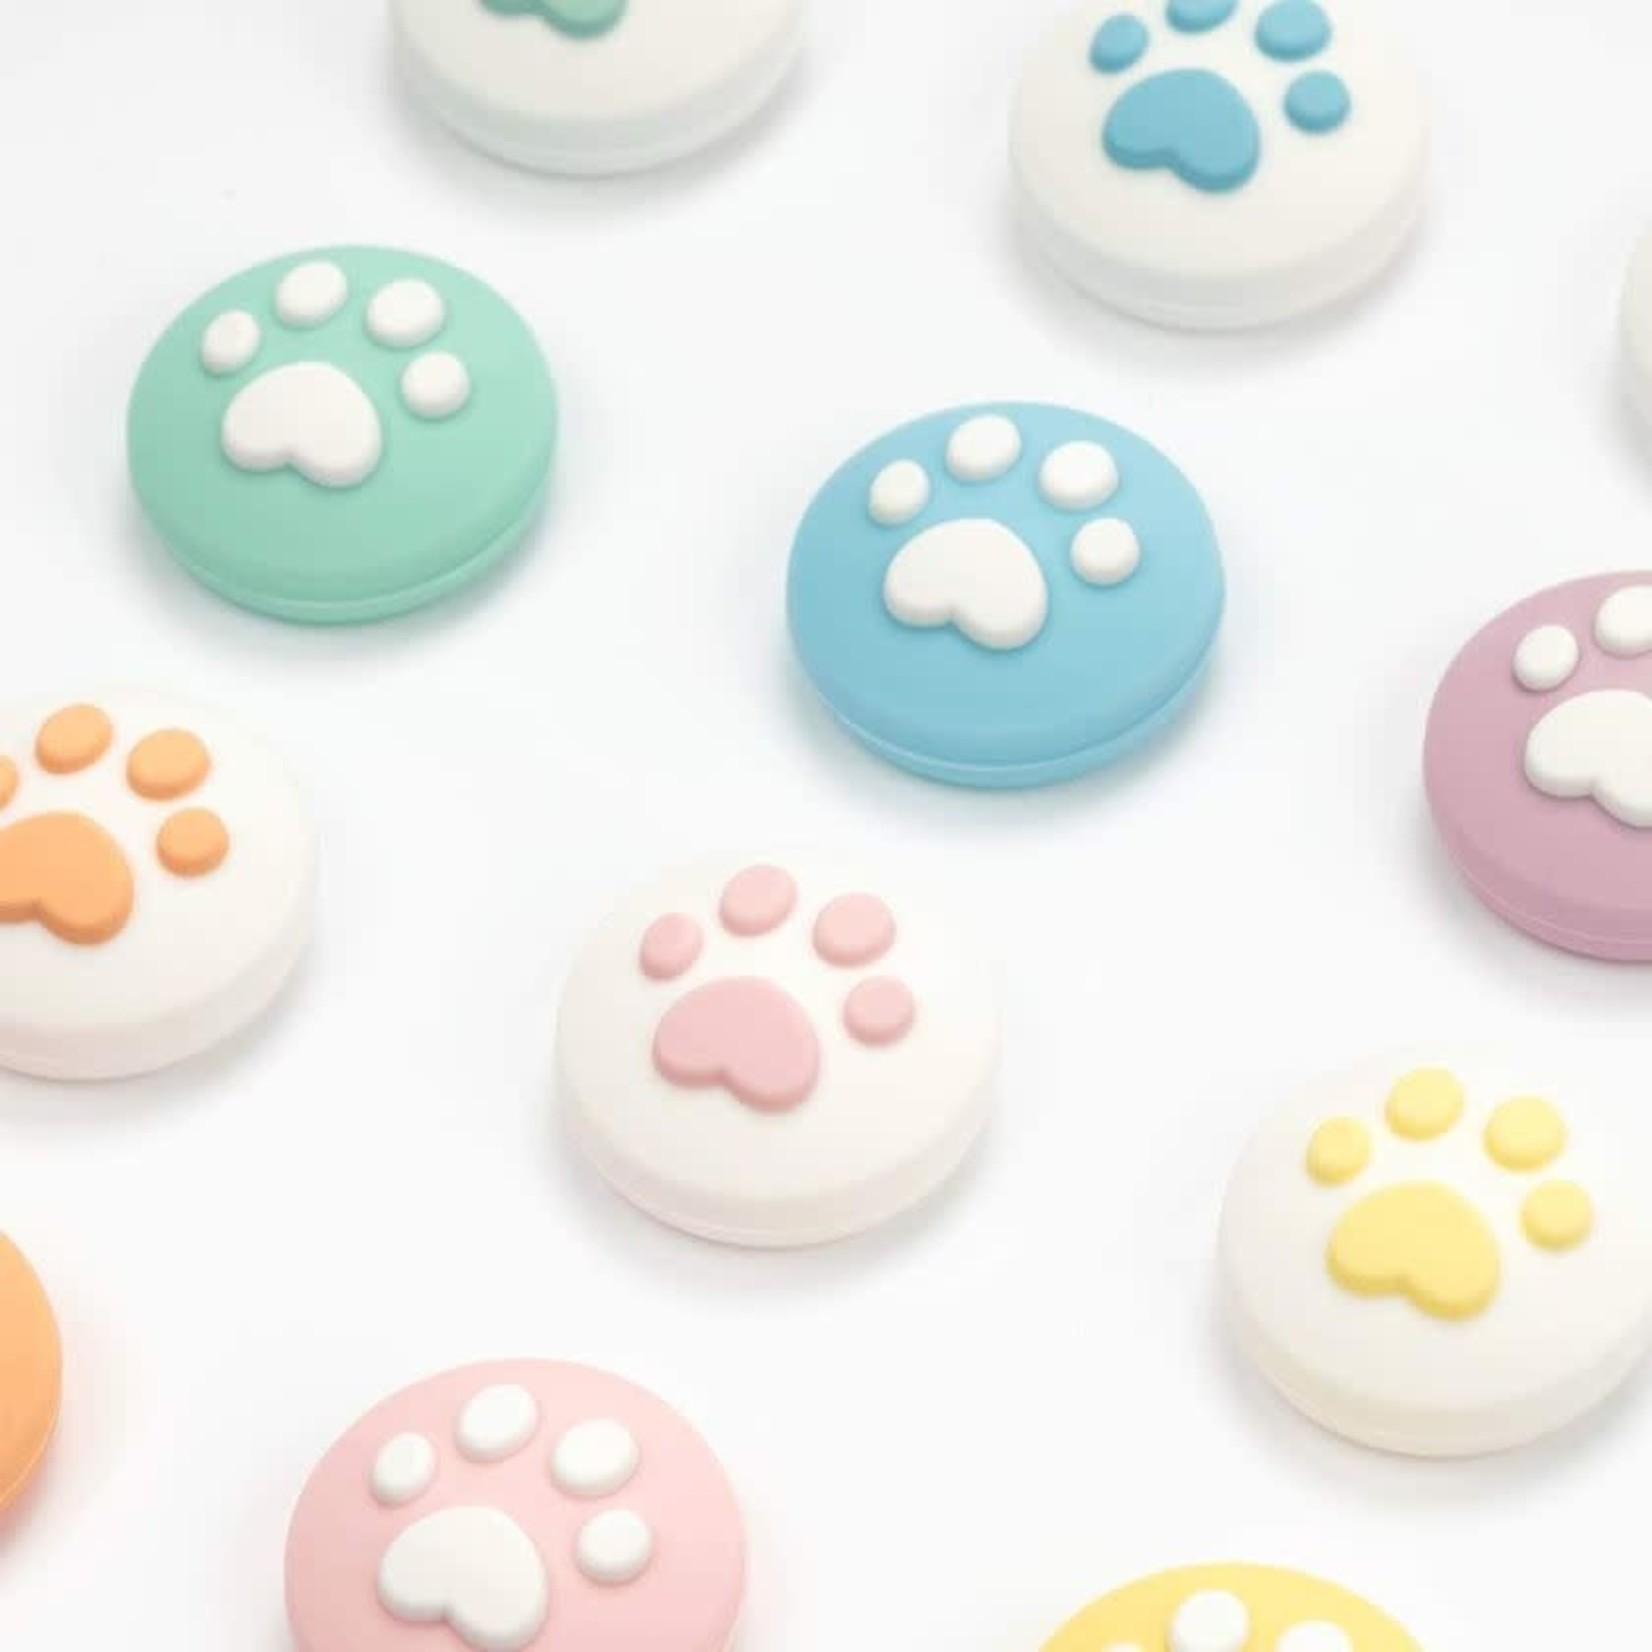 PAW PRINT CONTROLLER GRIPS